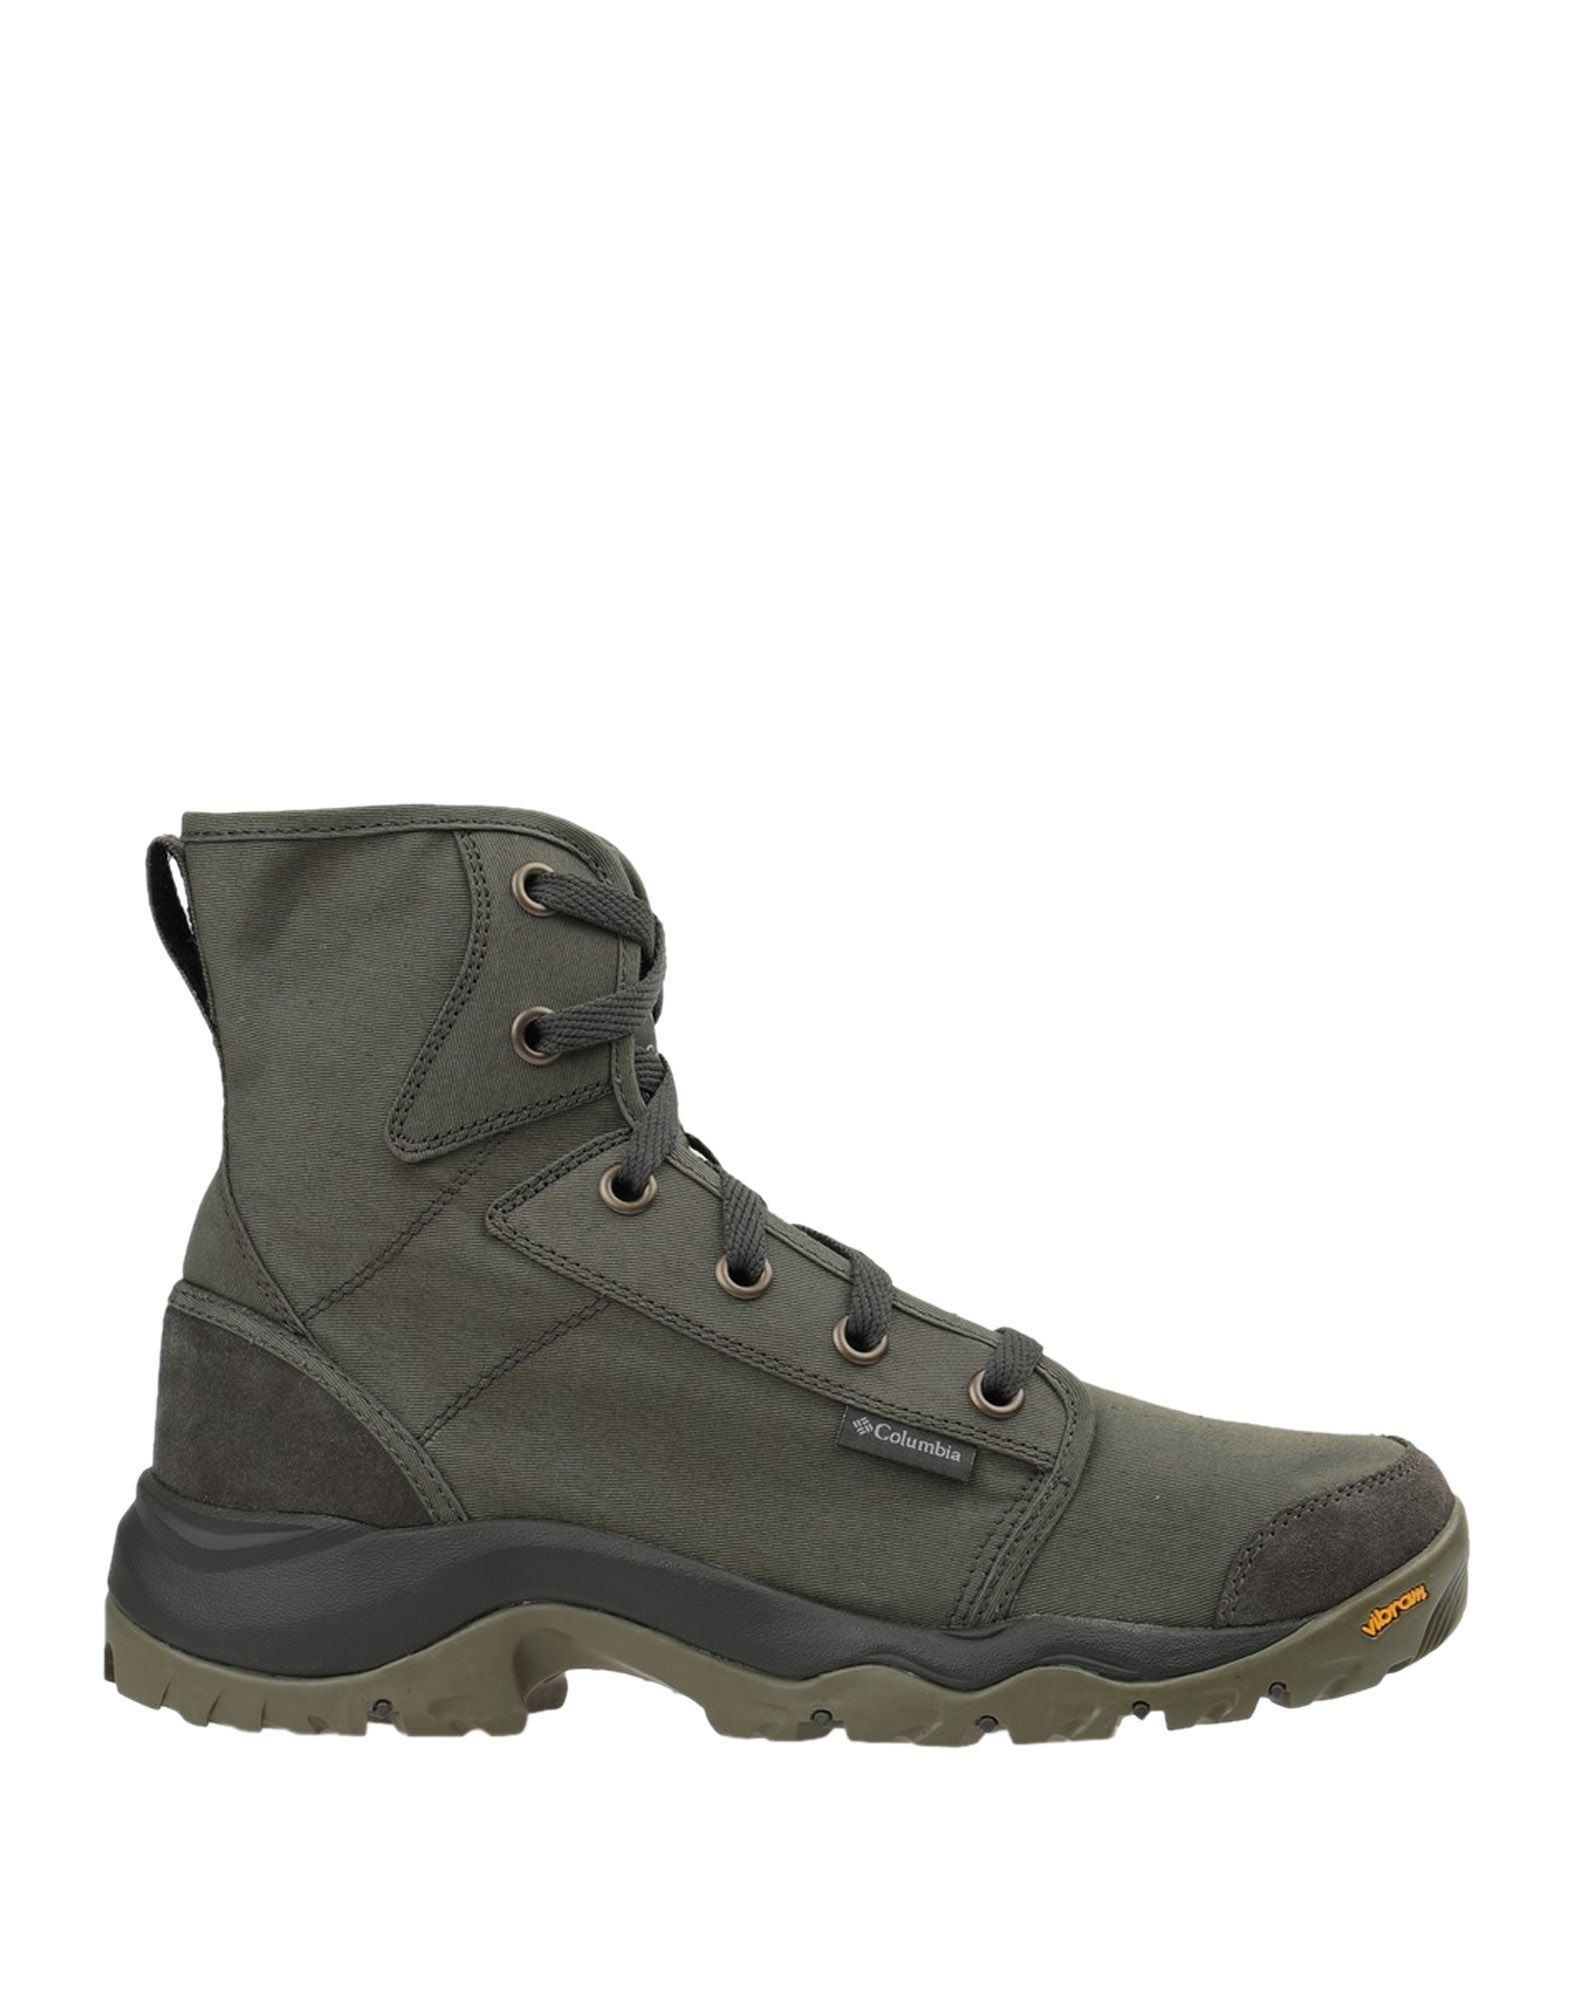 Columbia Boots In Military Green